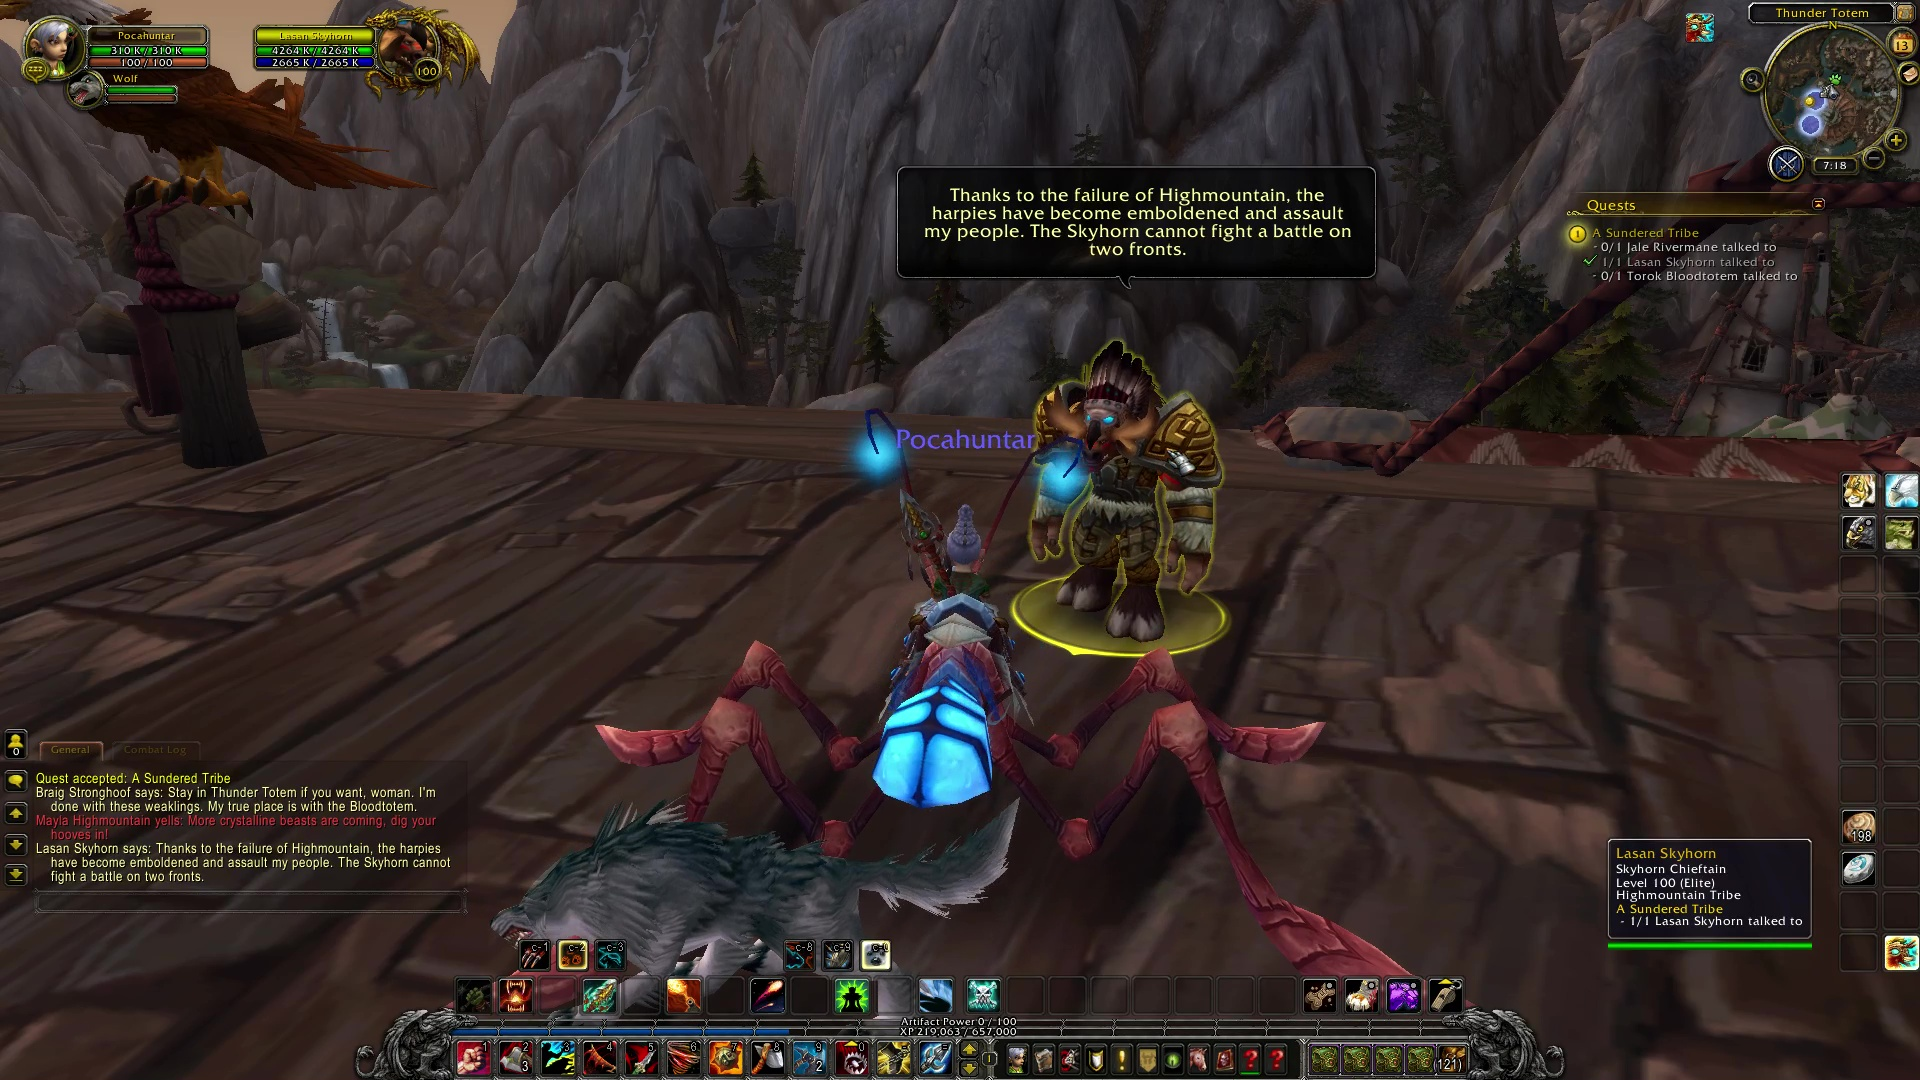 how to get rep with highmountain tribe